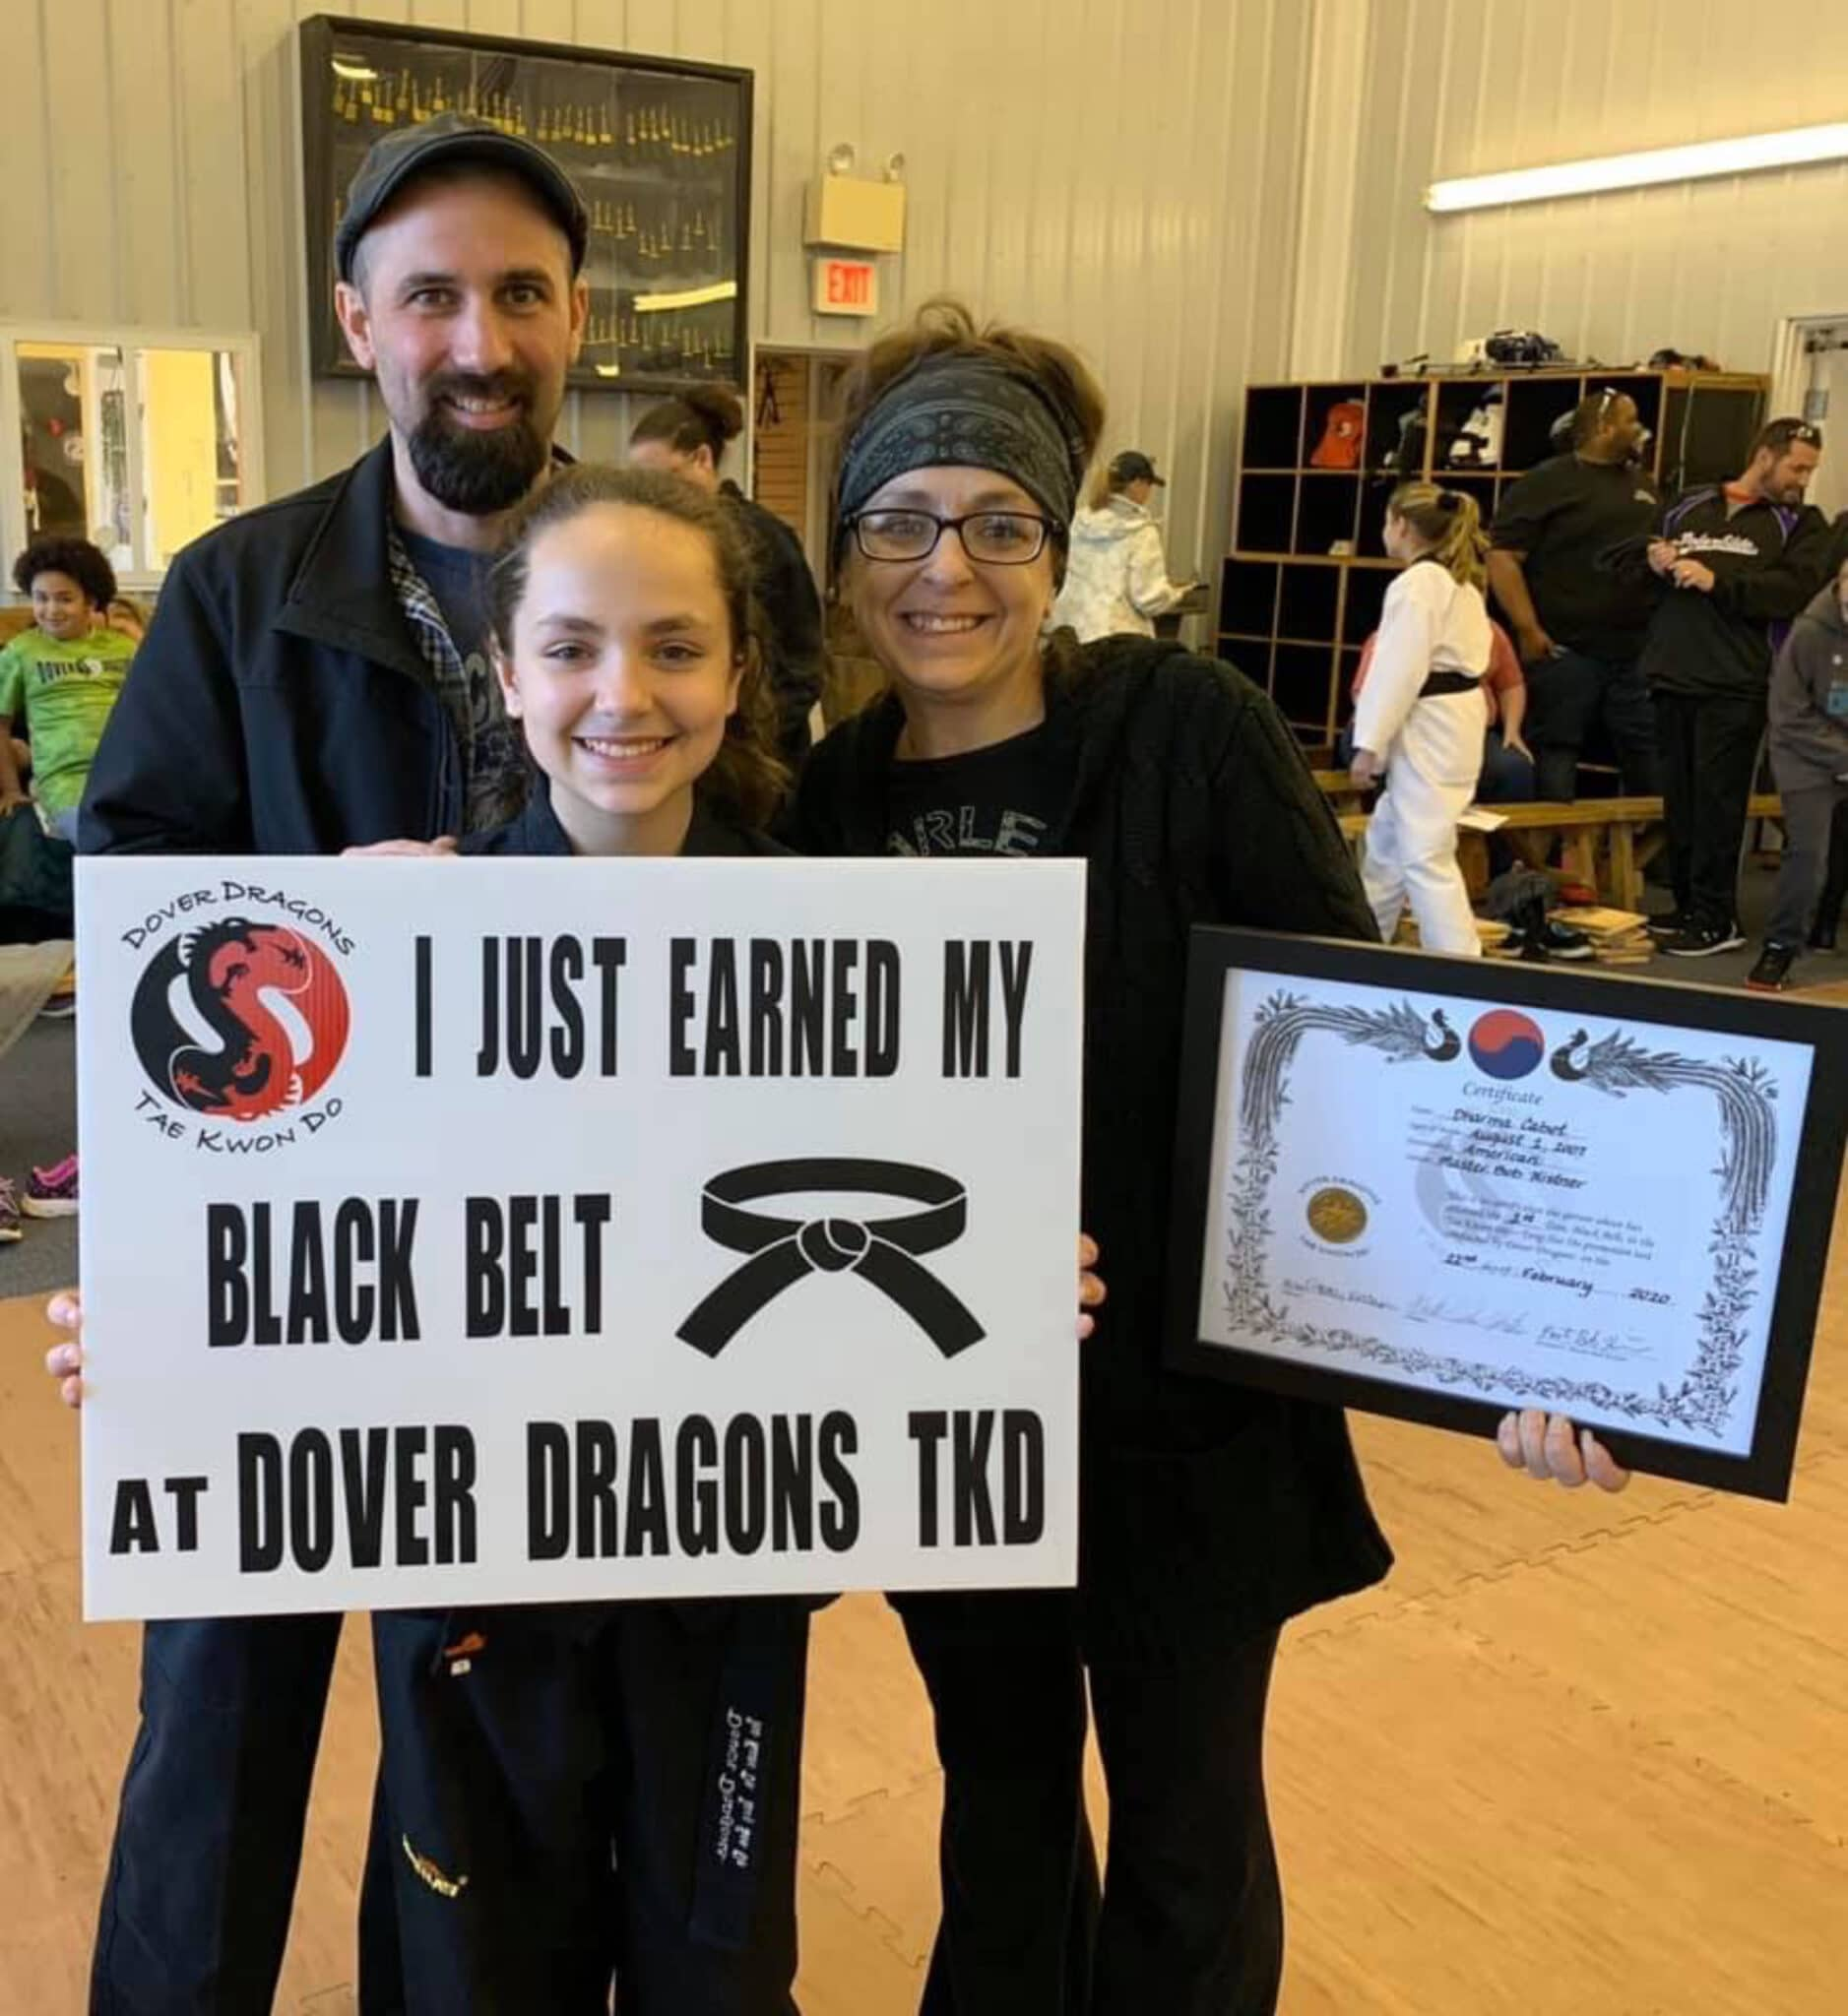 Dover Dragons Tae Kwon Do About Us image